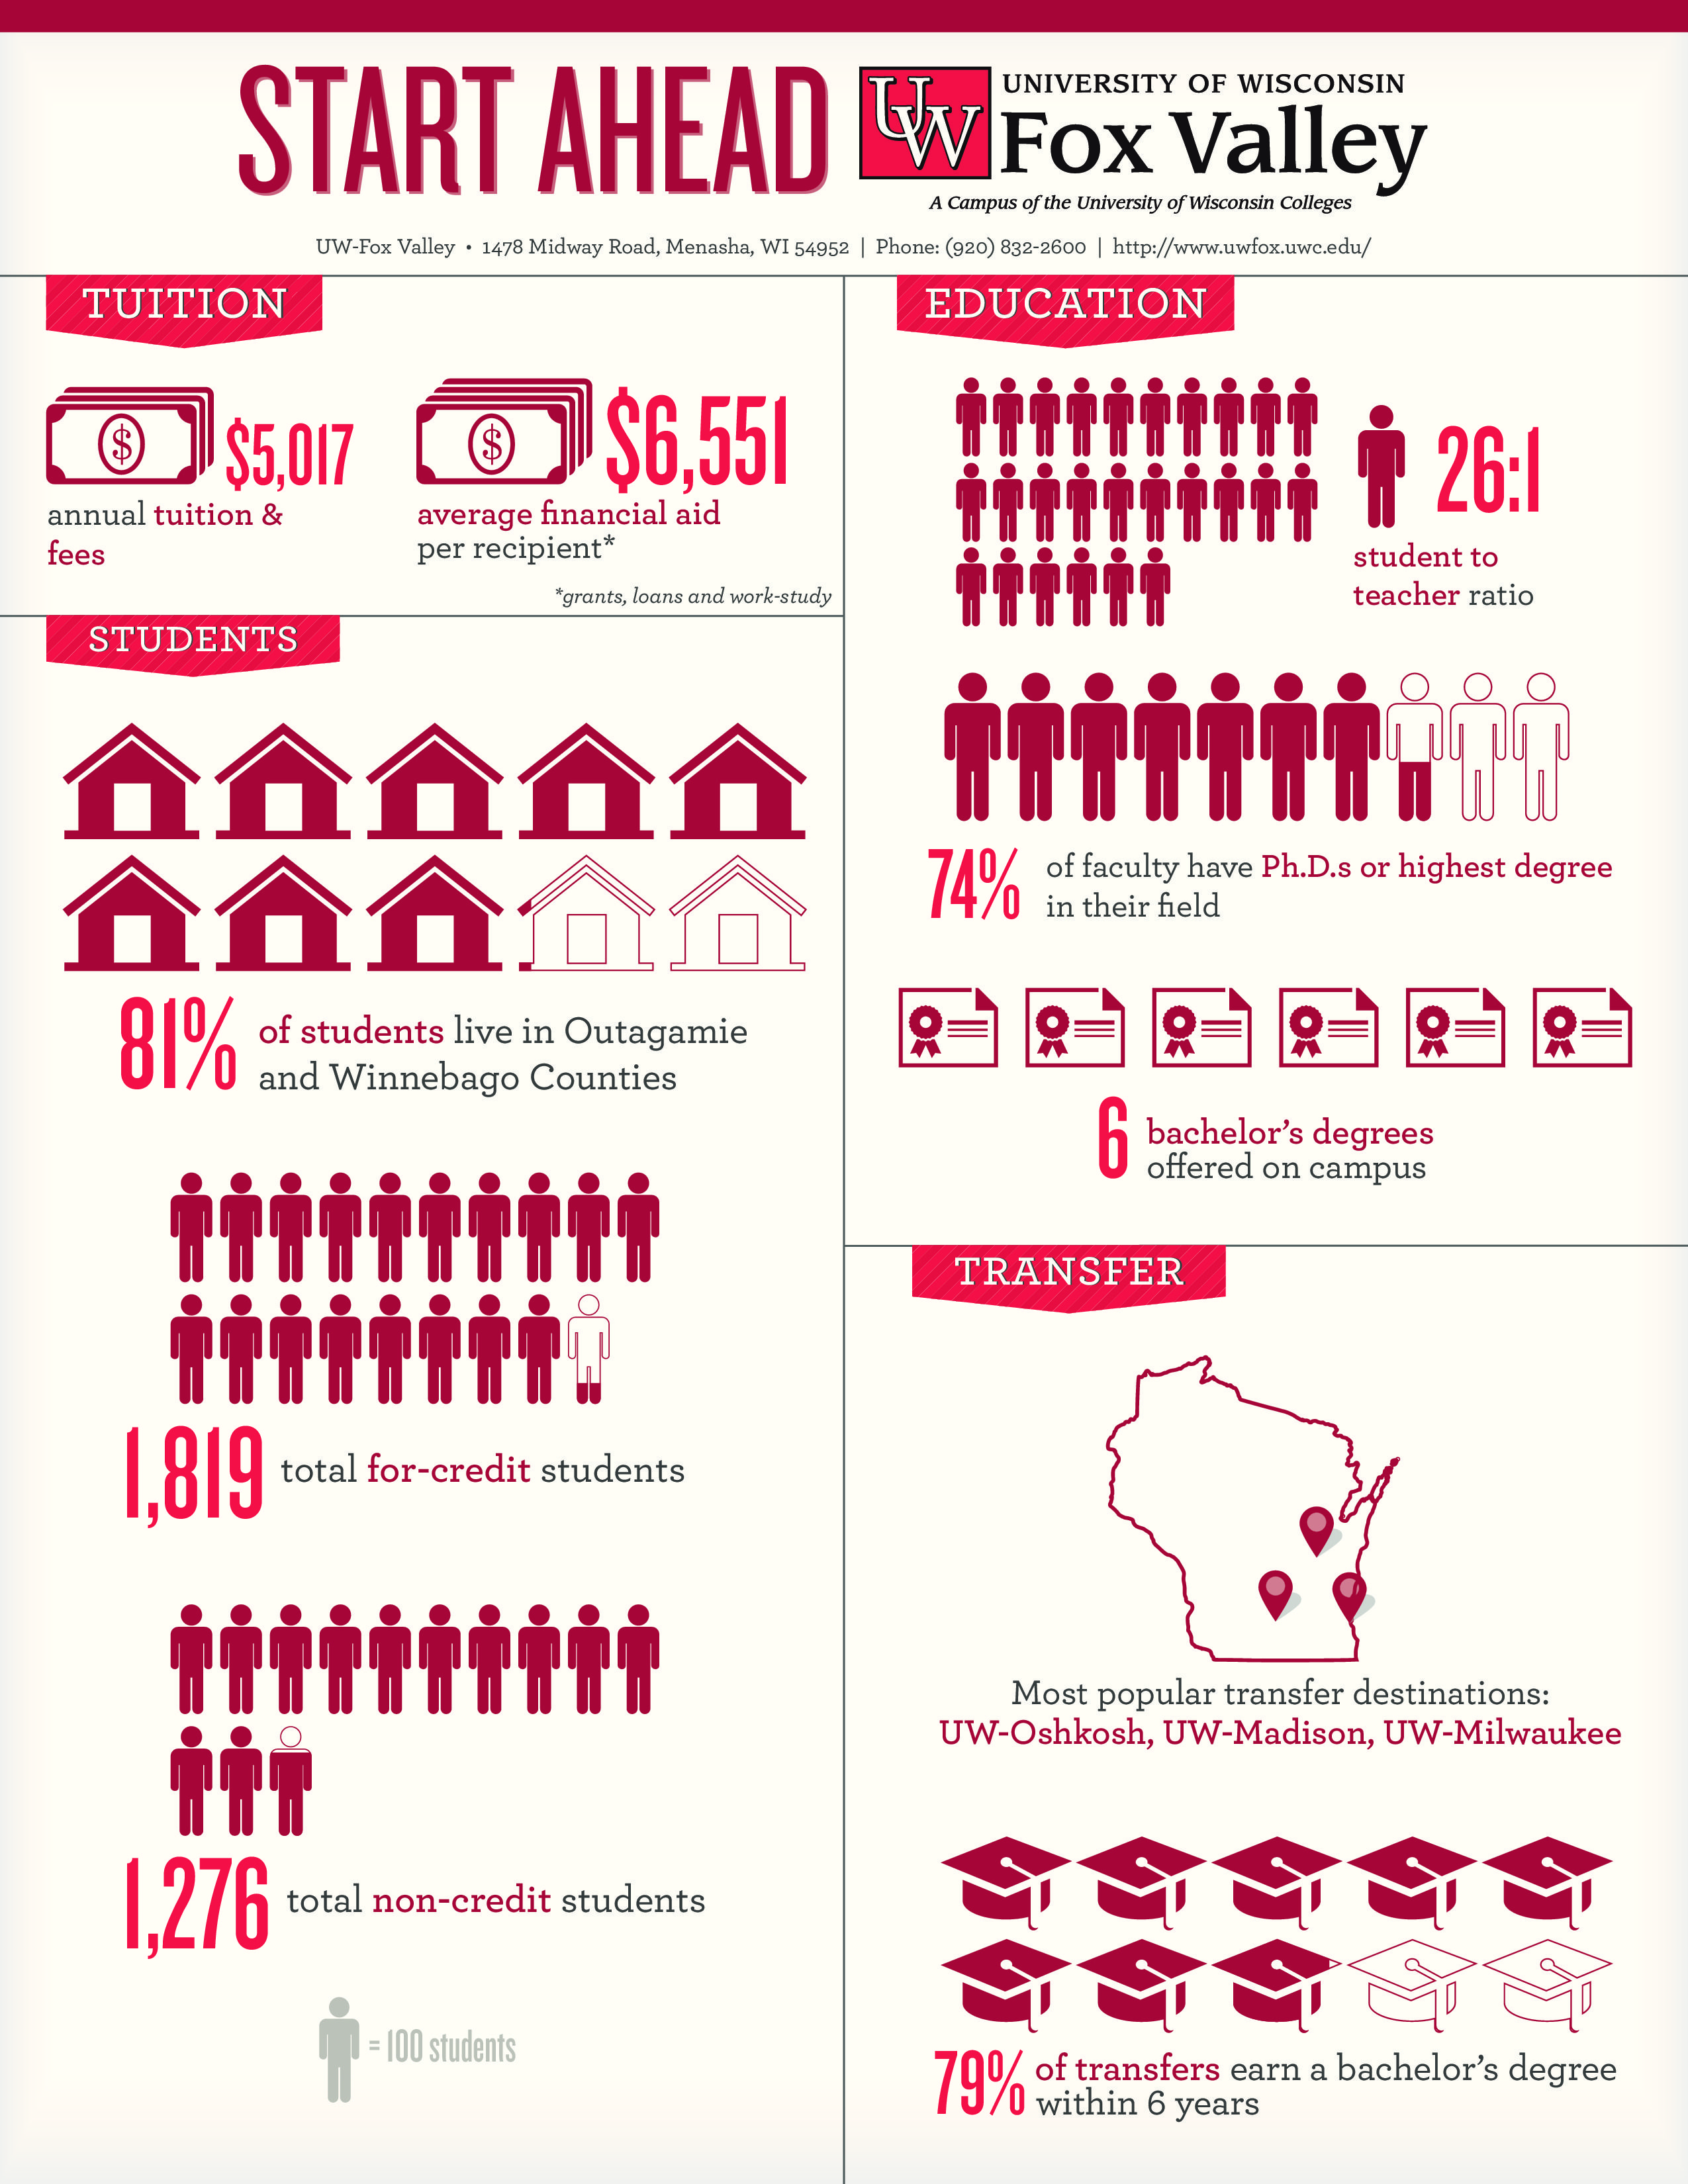 Uw Fox Valley Infographic And Fact Sheet Fact Sheet Infographic University Of Wisconsin